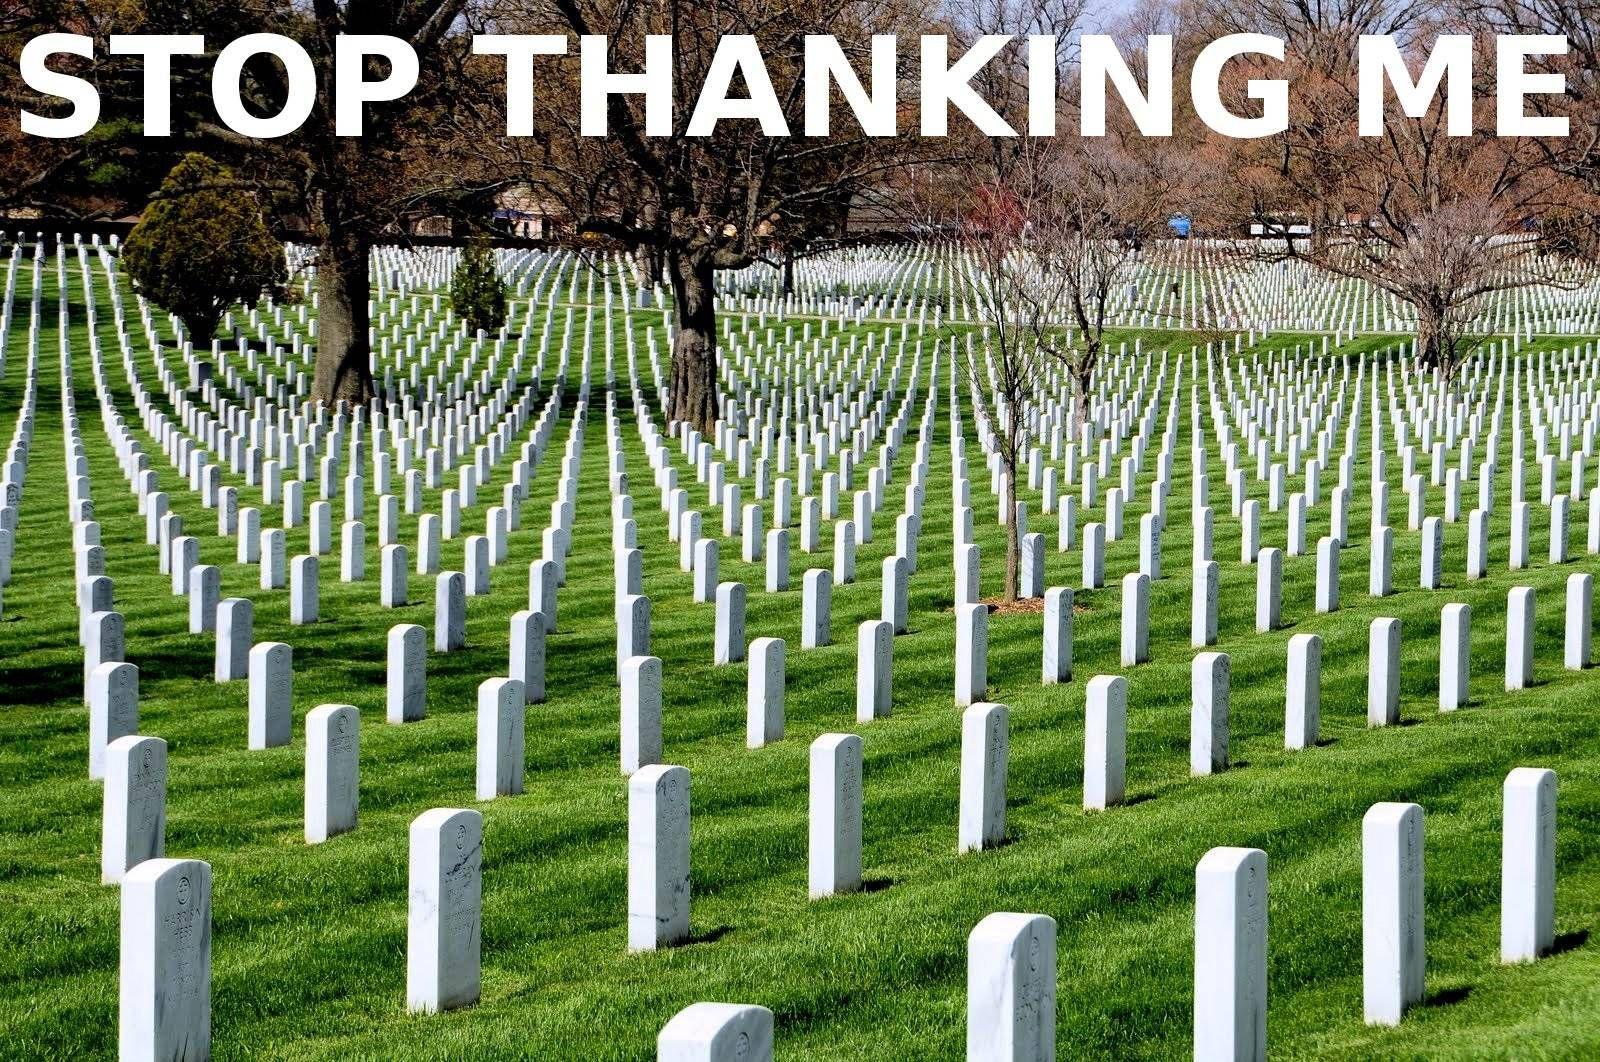 f13dc7d9eae27c4994372815ed68a970 as a military veteran on memorial day life pinterest,Funny Memorial Day Memes